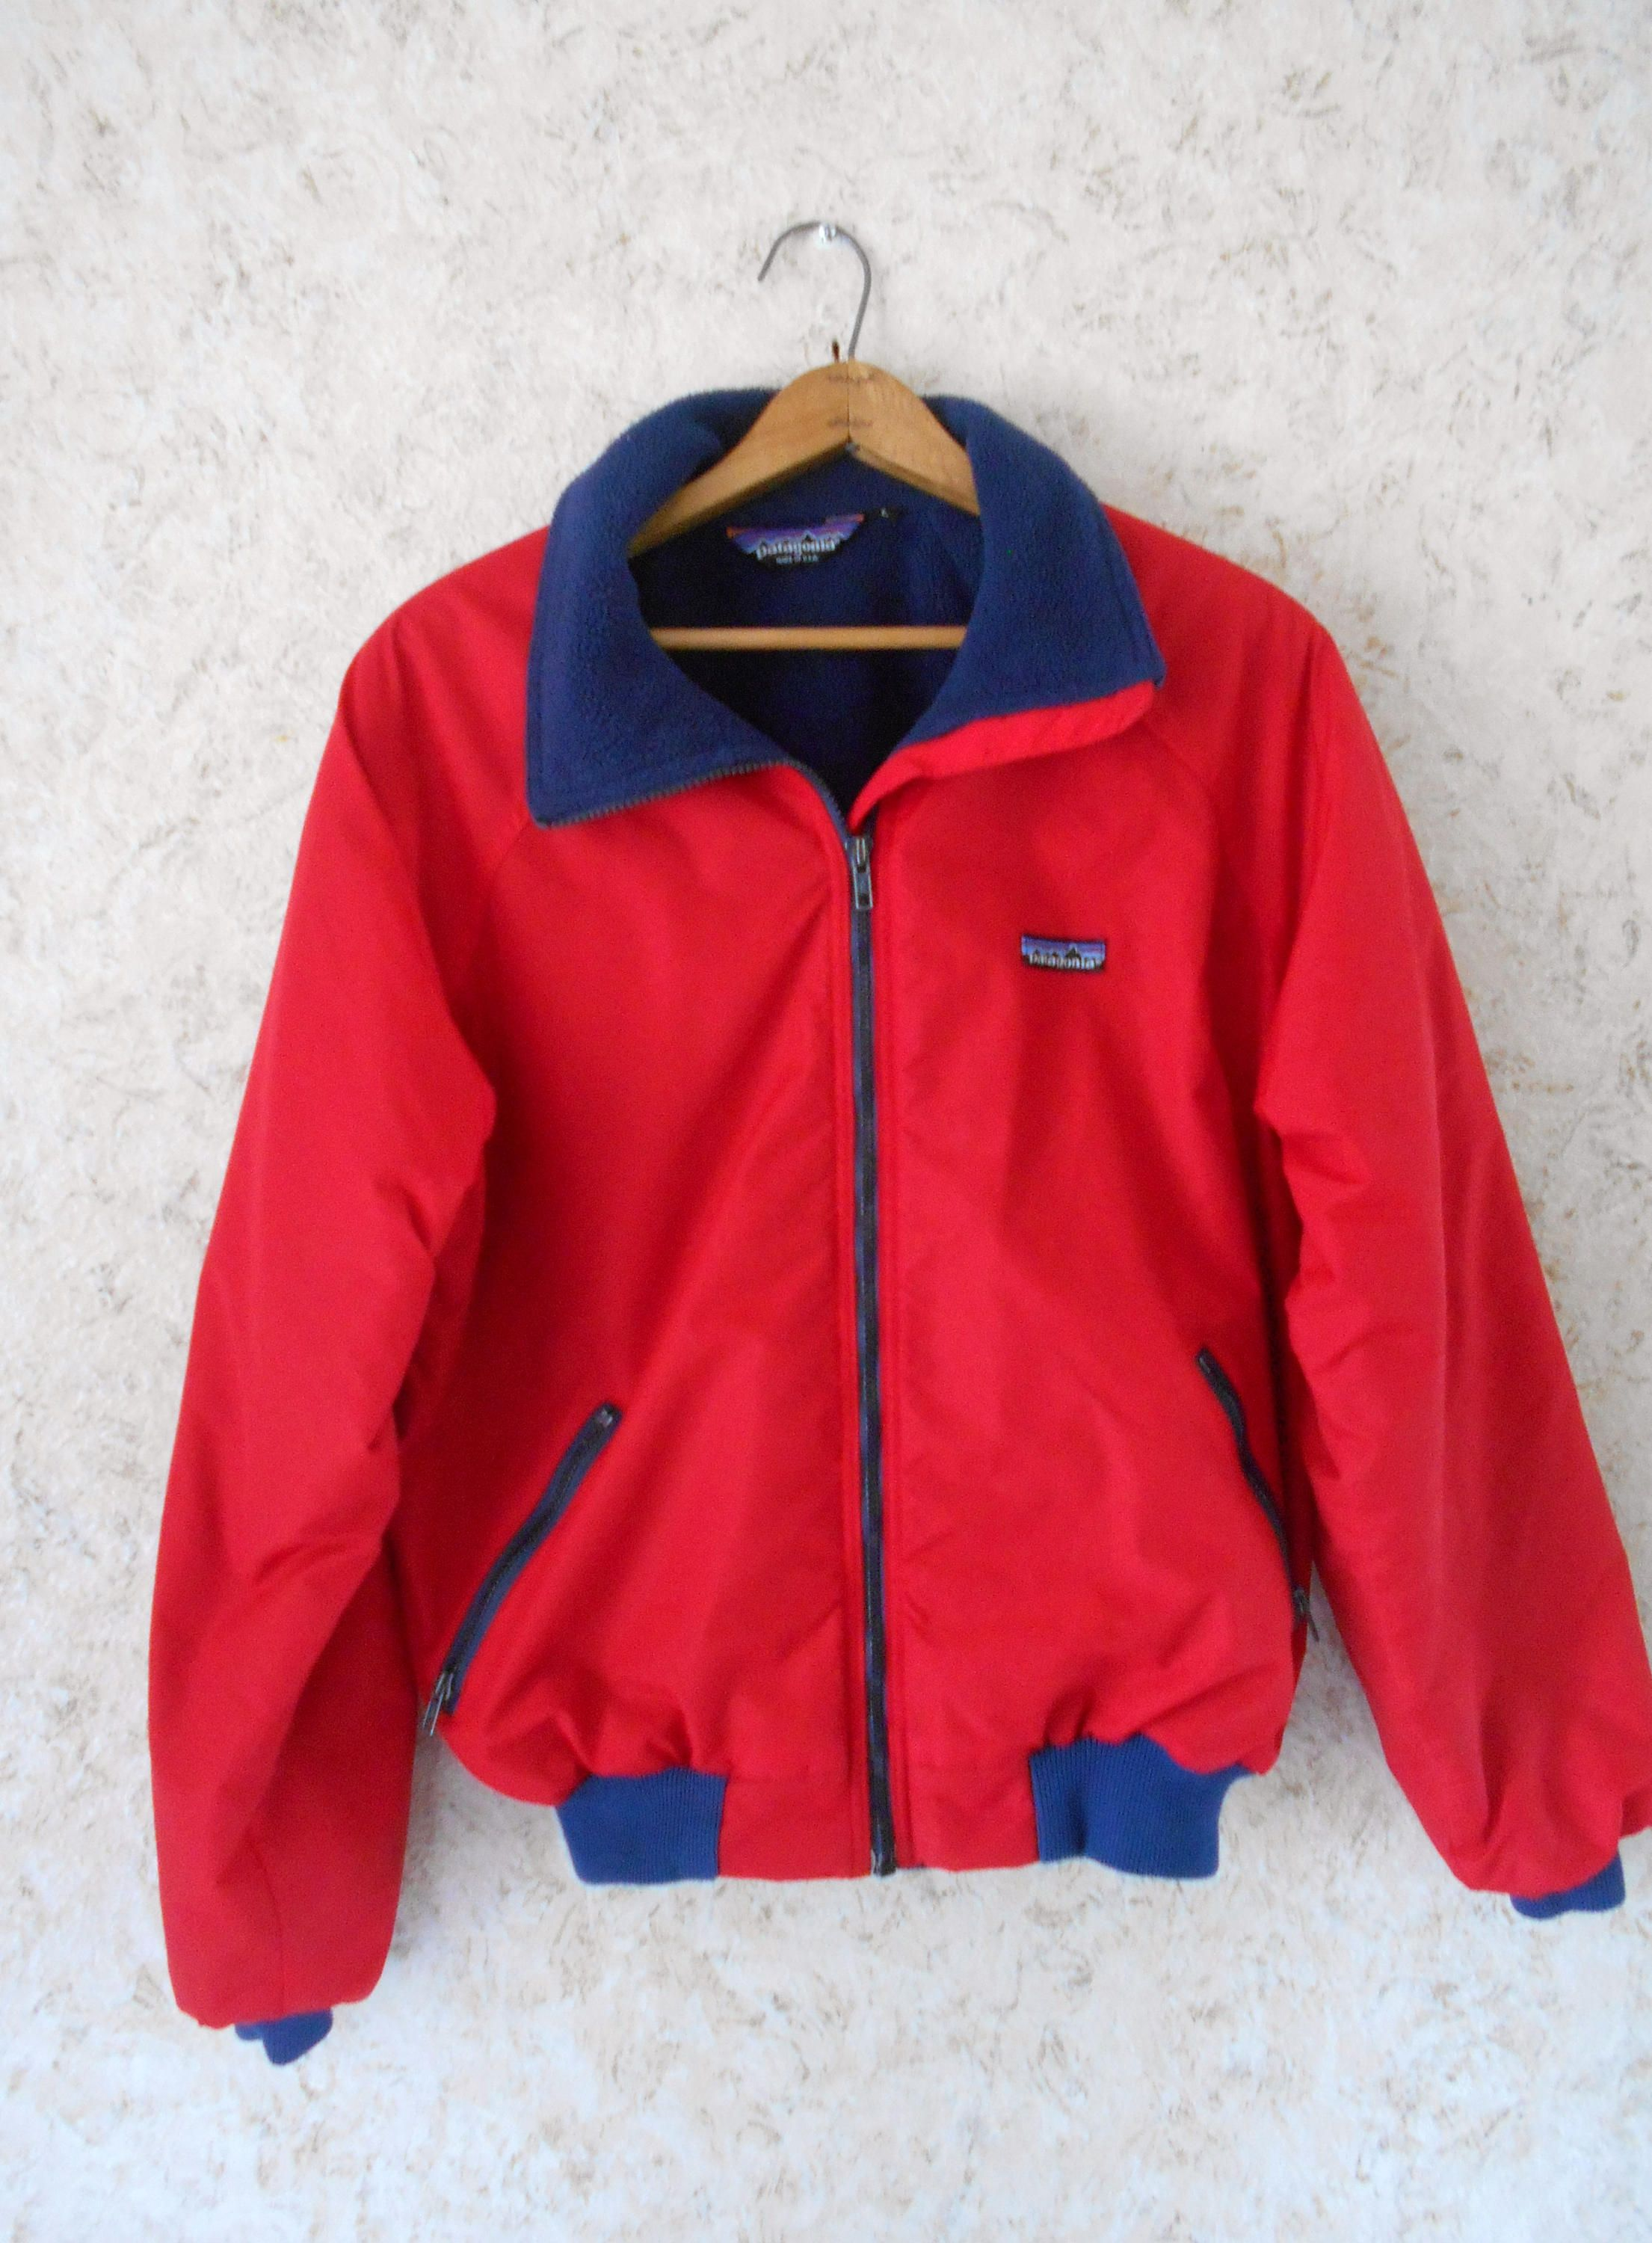 Vintage 1990s Patagonia Red Winter Jacket Coat Navy Fleece Lining Zippered  Front Retro Snow Ski Quality Made in USA Mens Size Large by CoolDogVintage  on ... 1f911c310a4a